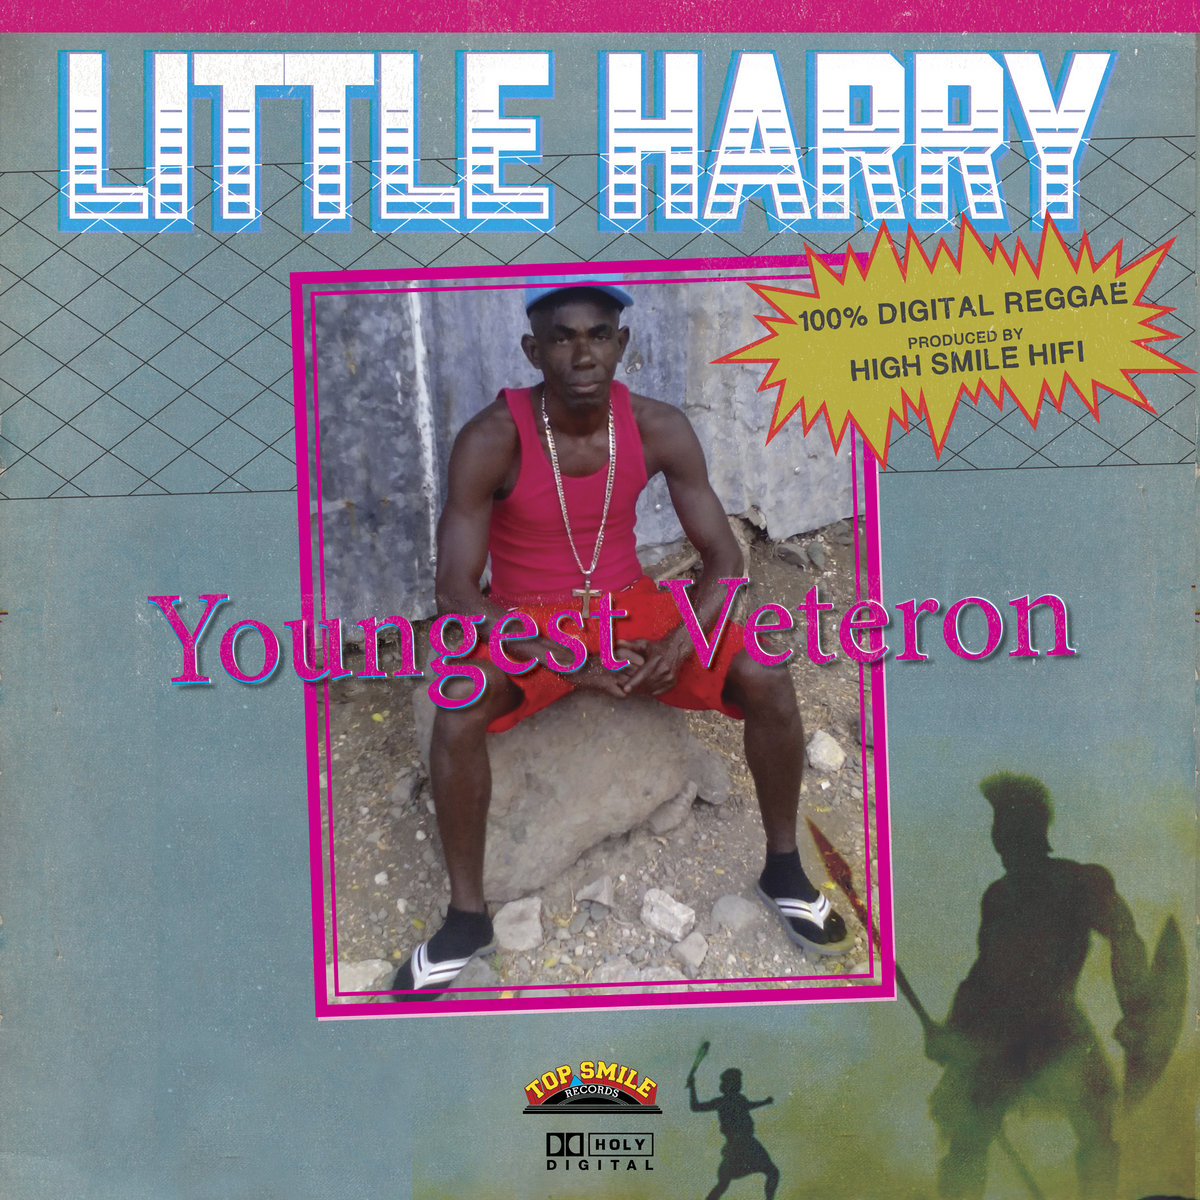 Youngest Veteron | High Smile HiFi